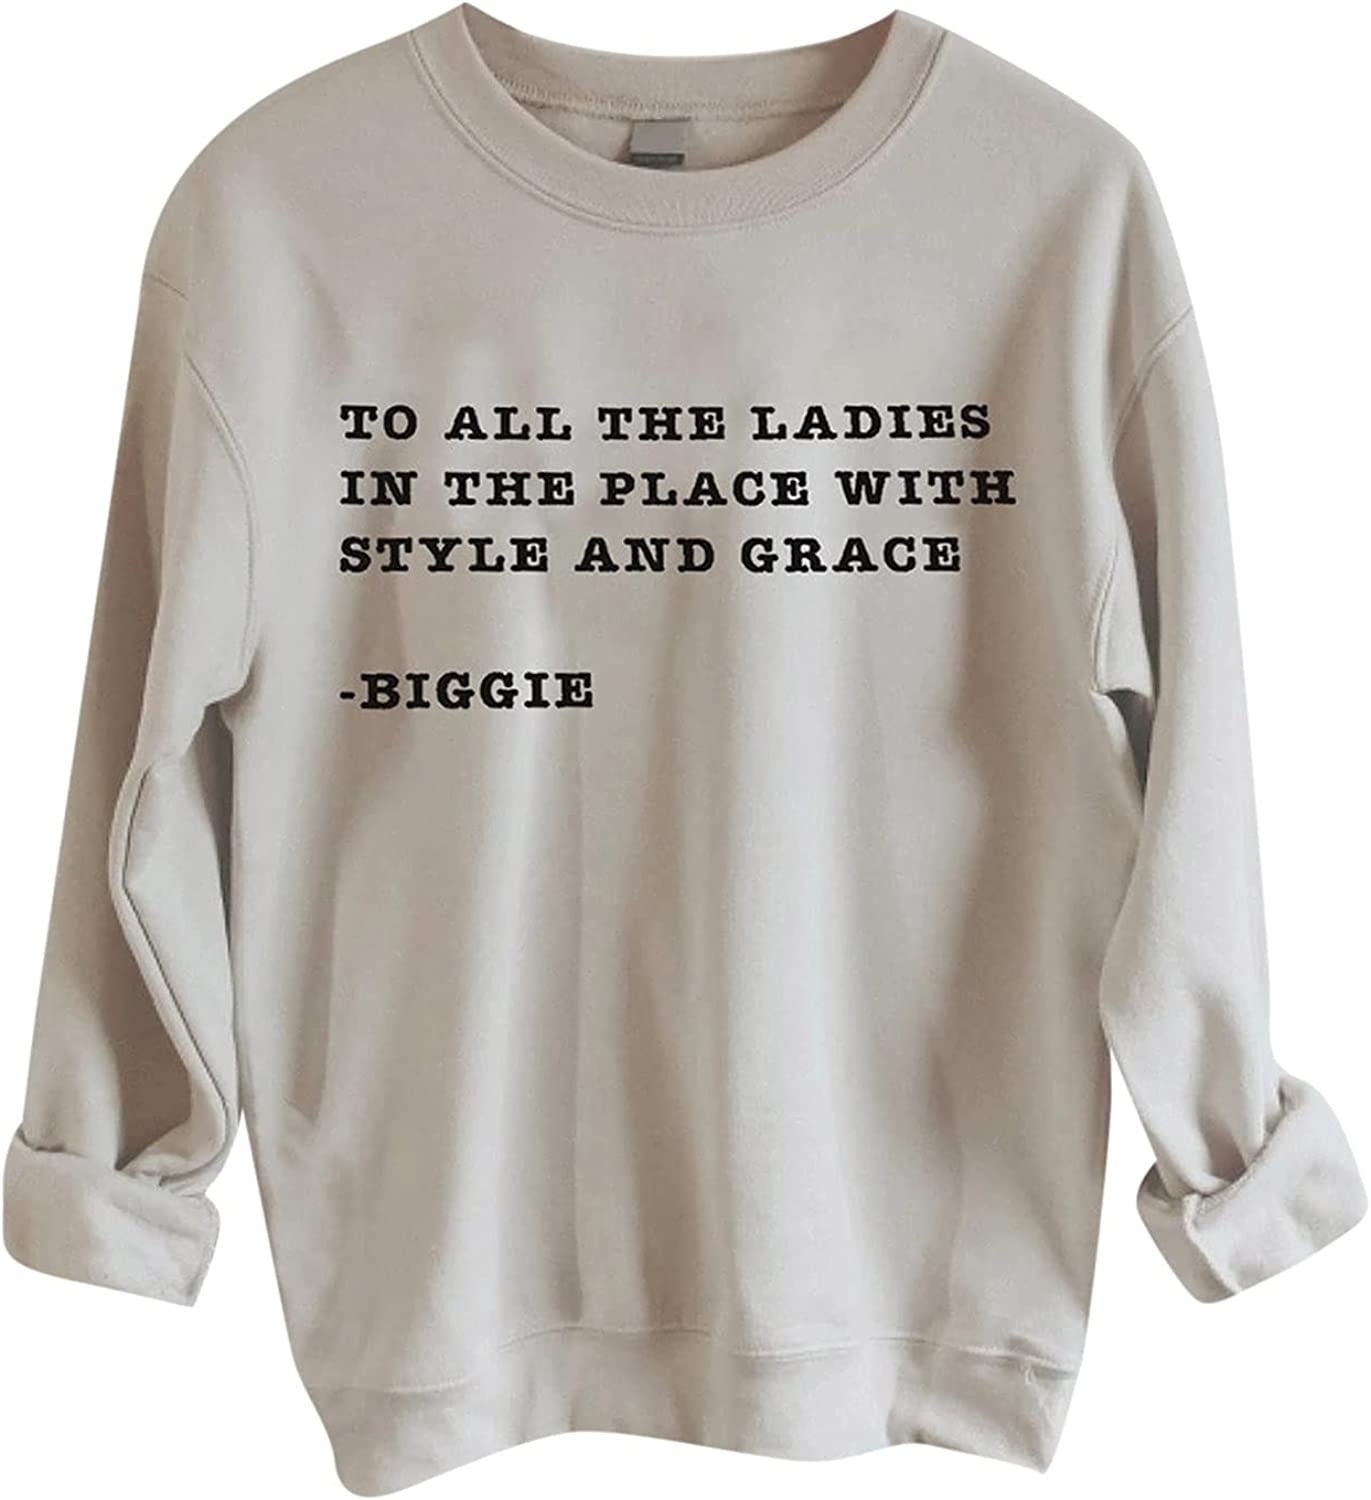 JPLZi Women Round Neck Long Sleeve Pullover Top Fashion Letter Print Casual Sweatshirts Comfy Oversized Fall Wear Top Tunics